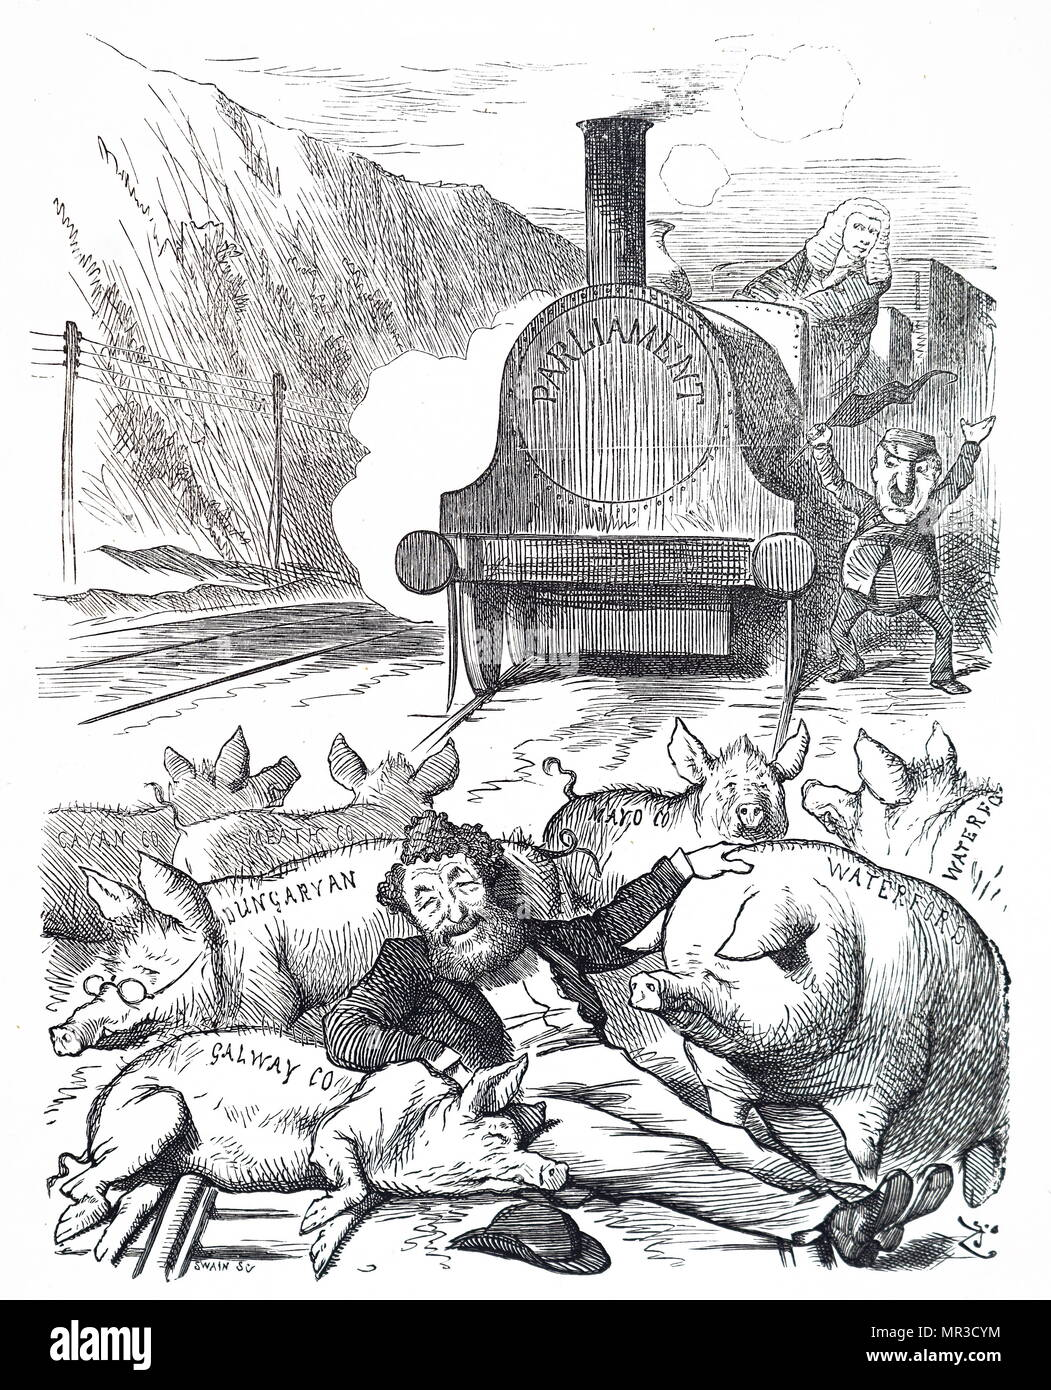 Cartoon titled 'Pig-headed Obstruction'. The cartoon depicts George Hammond Whalley (1813-1878), the MP for Peterborough, obstructing the tracks as he lies amongst pigs. The cartoon comments on the obstructive techniques of MPs to block unpopular proposals. Illustrated by Joseph Swain (1820-1909) an English wood-engraver. Dated 19th century - Stock Image